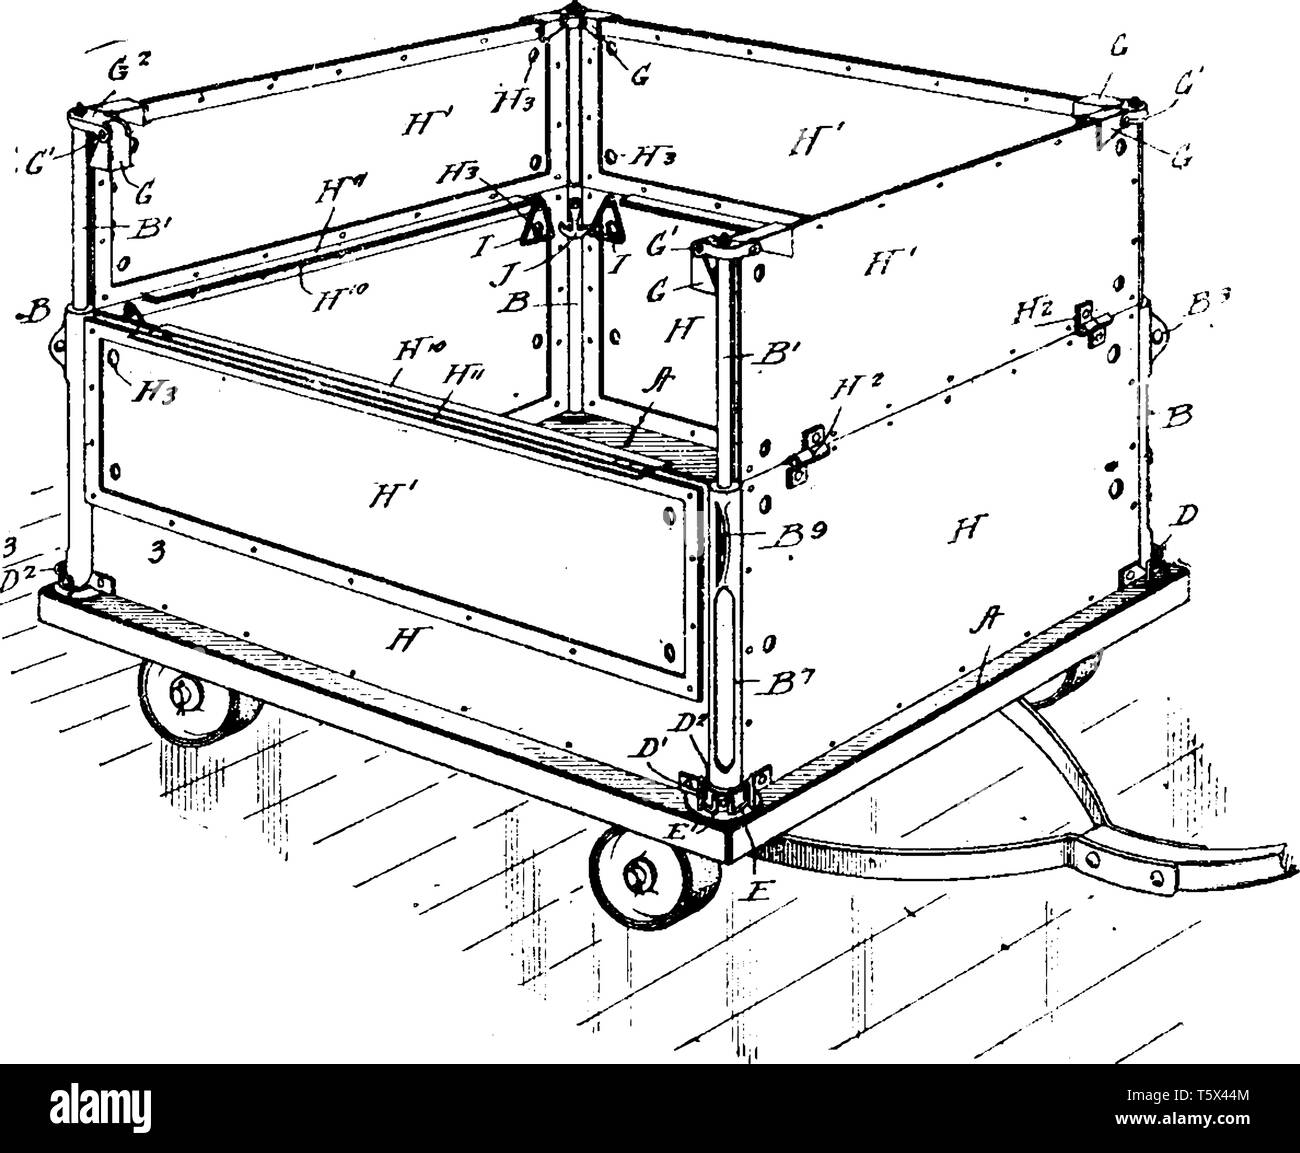 hand truck is a handcart that has a frame with two low wheels and a ledge  at the bottom and handles at the top, vintage line drawing or engraving illu